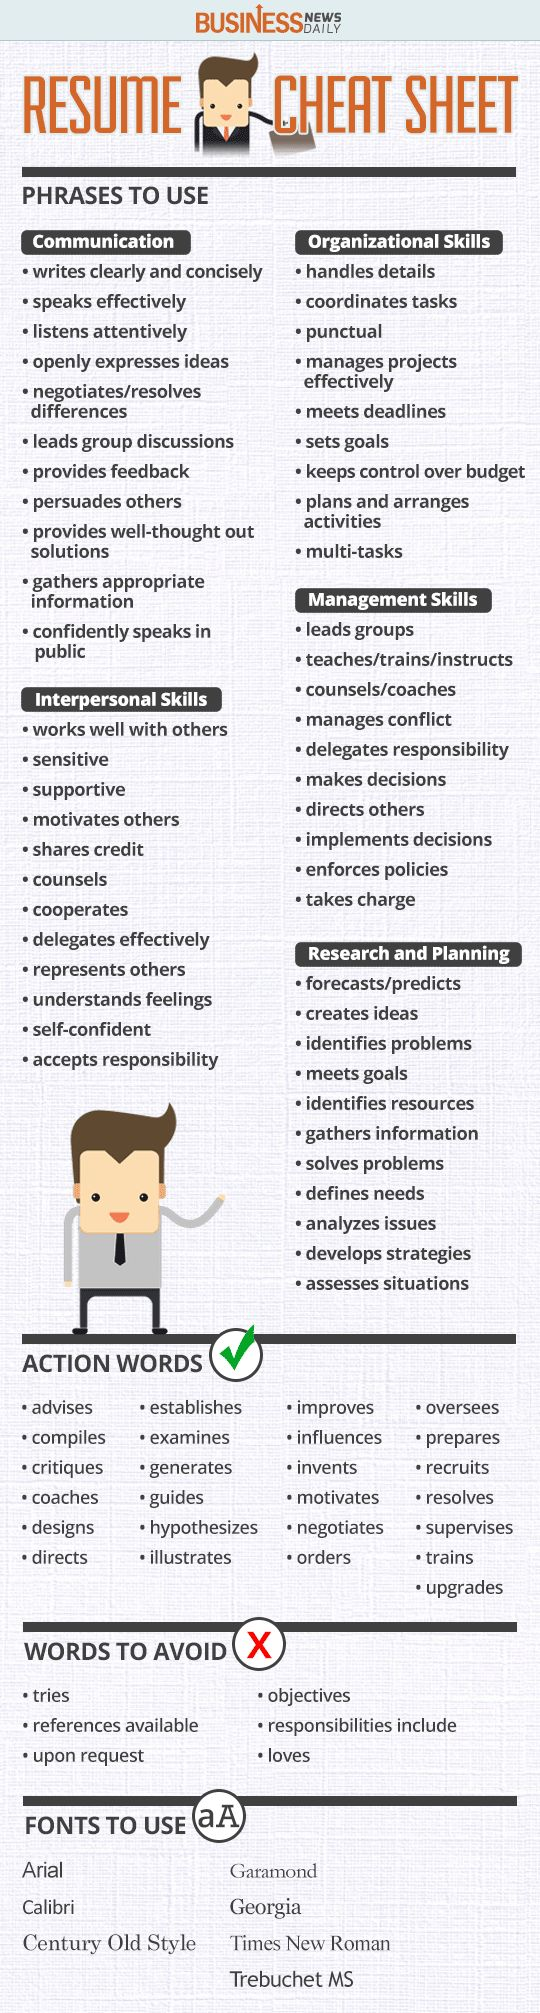 Opposenewapstandardsus  Pleasing  Ideas About Resume On Pinterest  Cv Format Resume Cv And  With Goodlooking Resume Cheat Sheet Infographic Andrews Almost Done With A Complete Unit On Employment Which With Delectable Objective On Resume Also Resume Summary Examples In Addition Examples Of Resumes And Teacher Resume As Well As Example Resumes Additionally How To Do A Resume From Pinterestcom With Opposenewapstandardsus  Goodlooking  Ideas About Resume On Pinterest  Cv Format Resume Cv And  With Delectable Resume Cheat Sheet Infographic Andrews Almost Done With A Complete Unit On Employment Which And Pleasing Objective On Resume Also Resume Summary Examples In Addition Examples Of Resumes From Pinterestcom